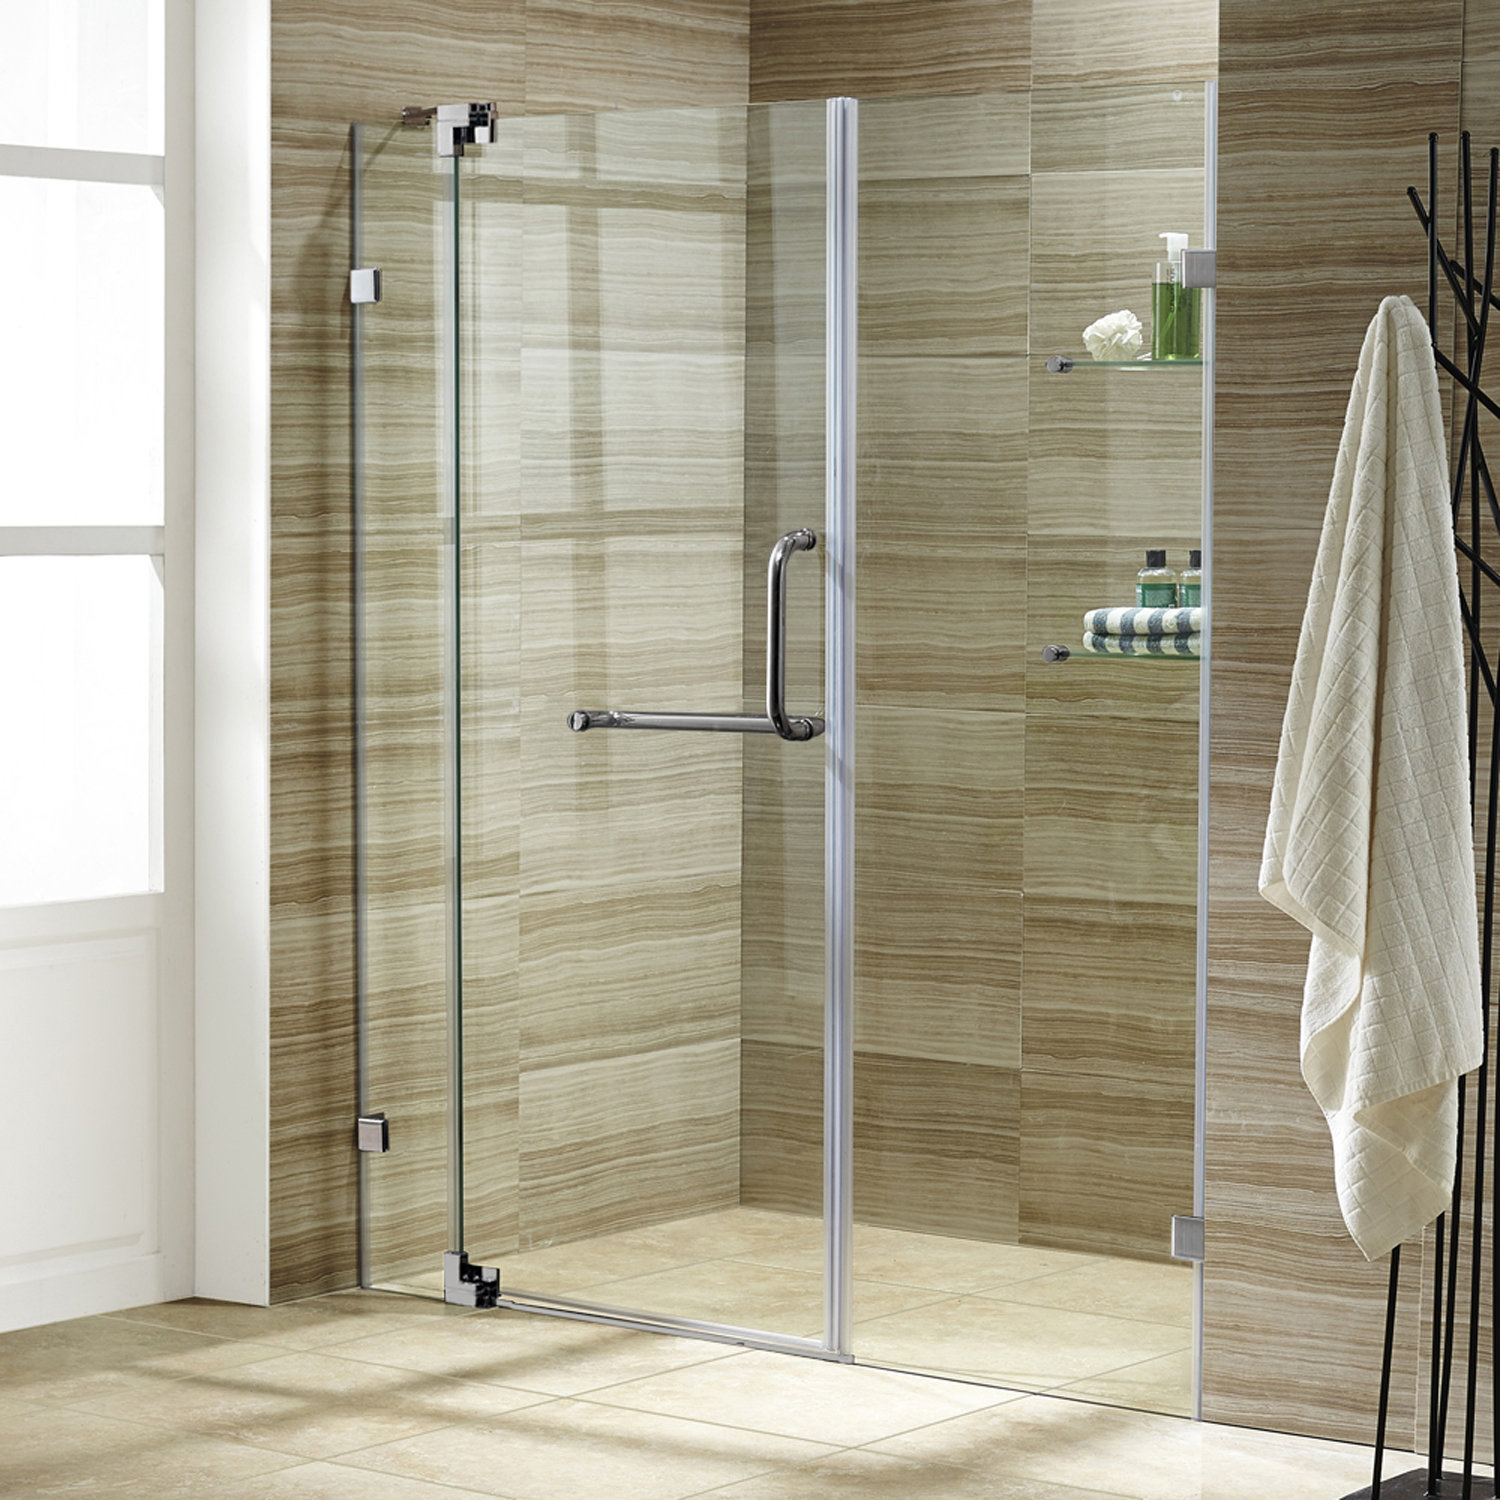 Vigo Pirouette 66 X 72 Pivot Frameless Shower Door Reviews Wayfair with size 1500 X 1500